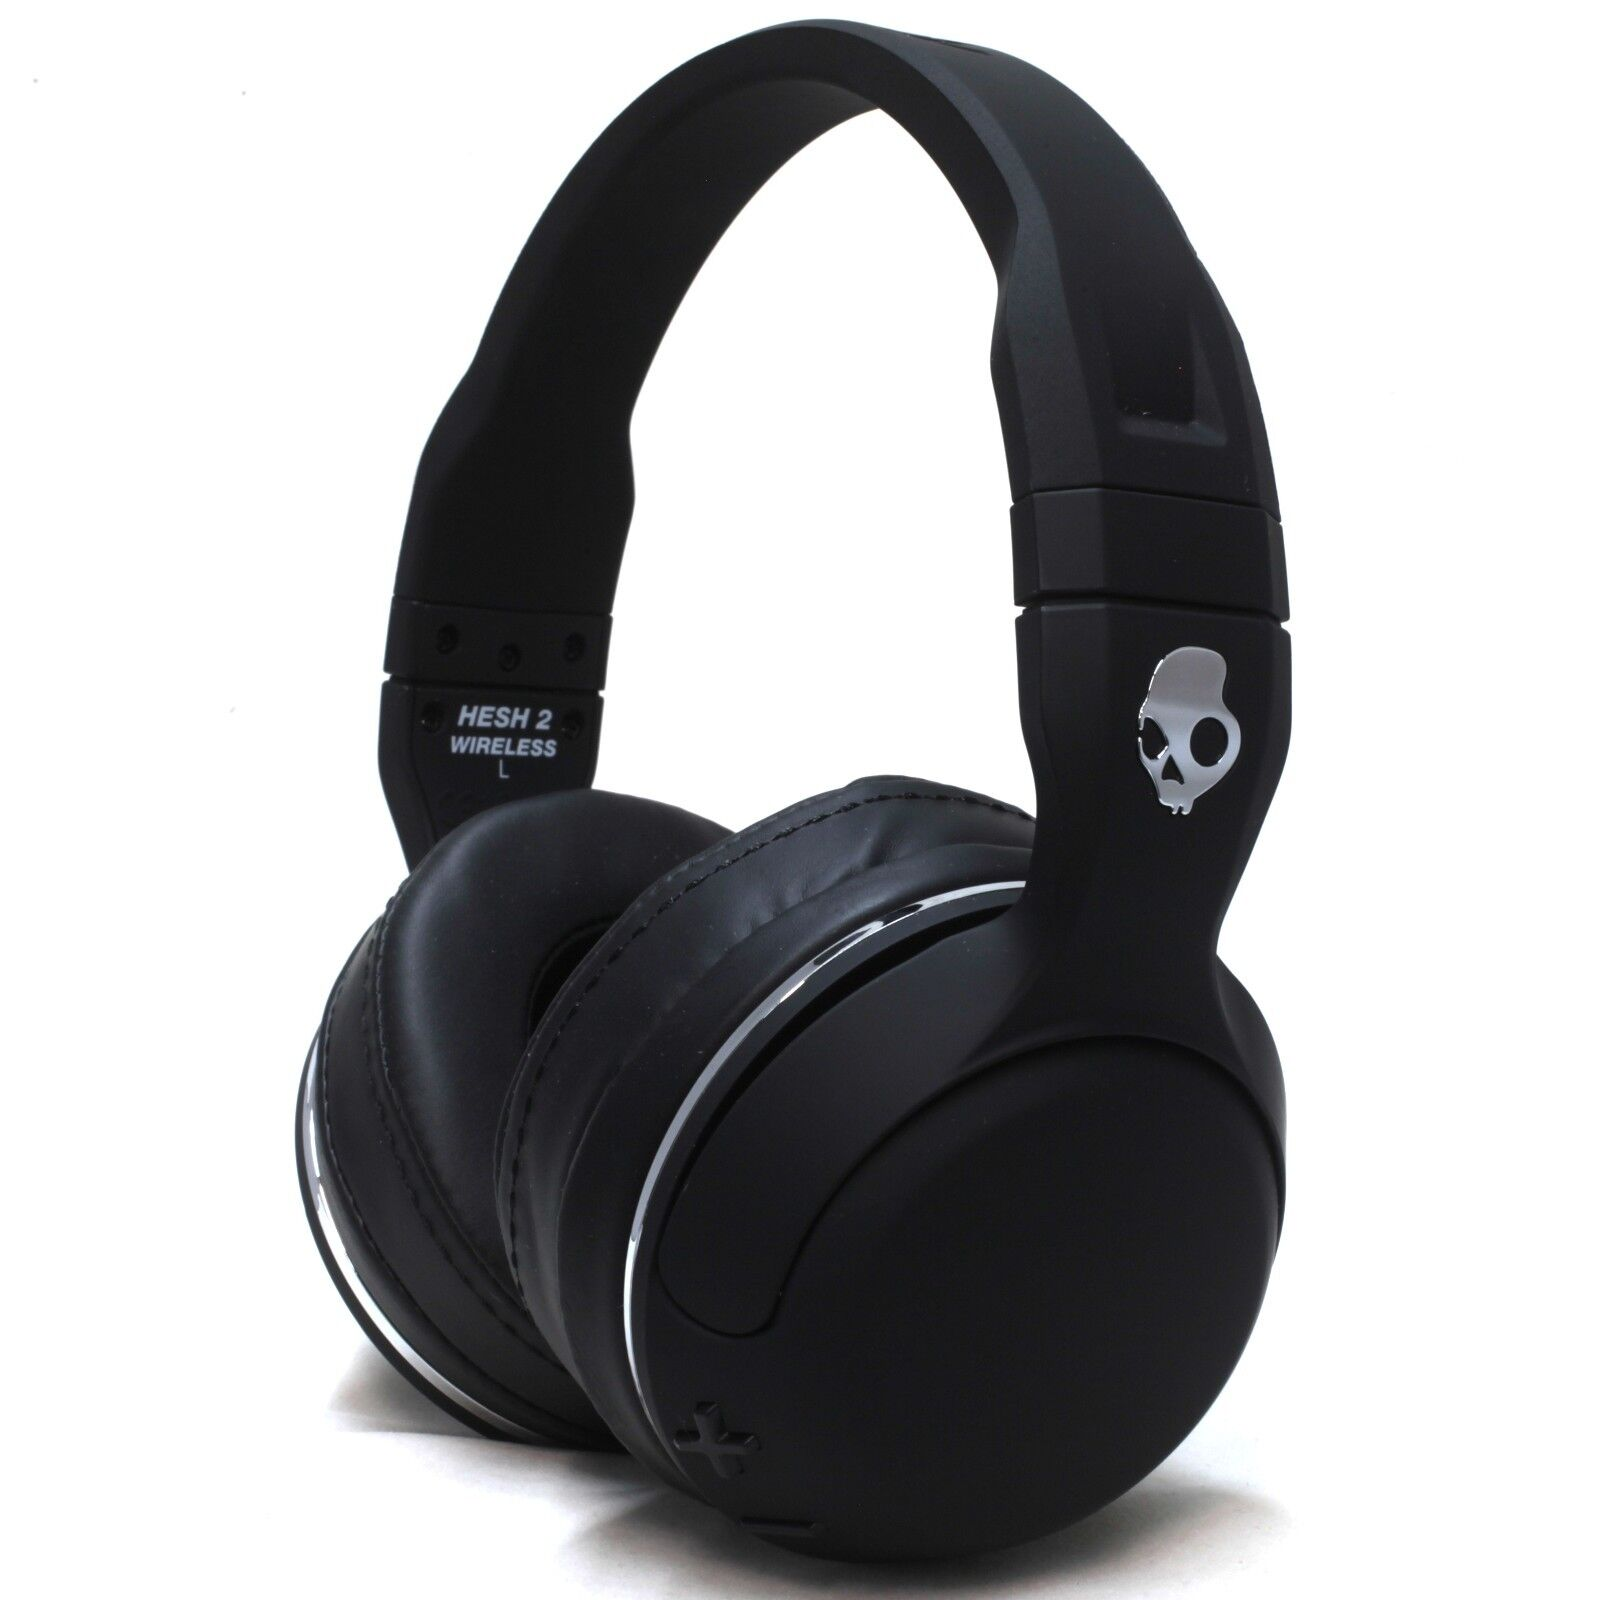 Skullcandy iCon 2 headphones Skullcandy Icon 2 headphones are a decent option for teens who prefer on-ear models with a splash of style and a built-in mic for music phone compatibility. $ MSRP.